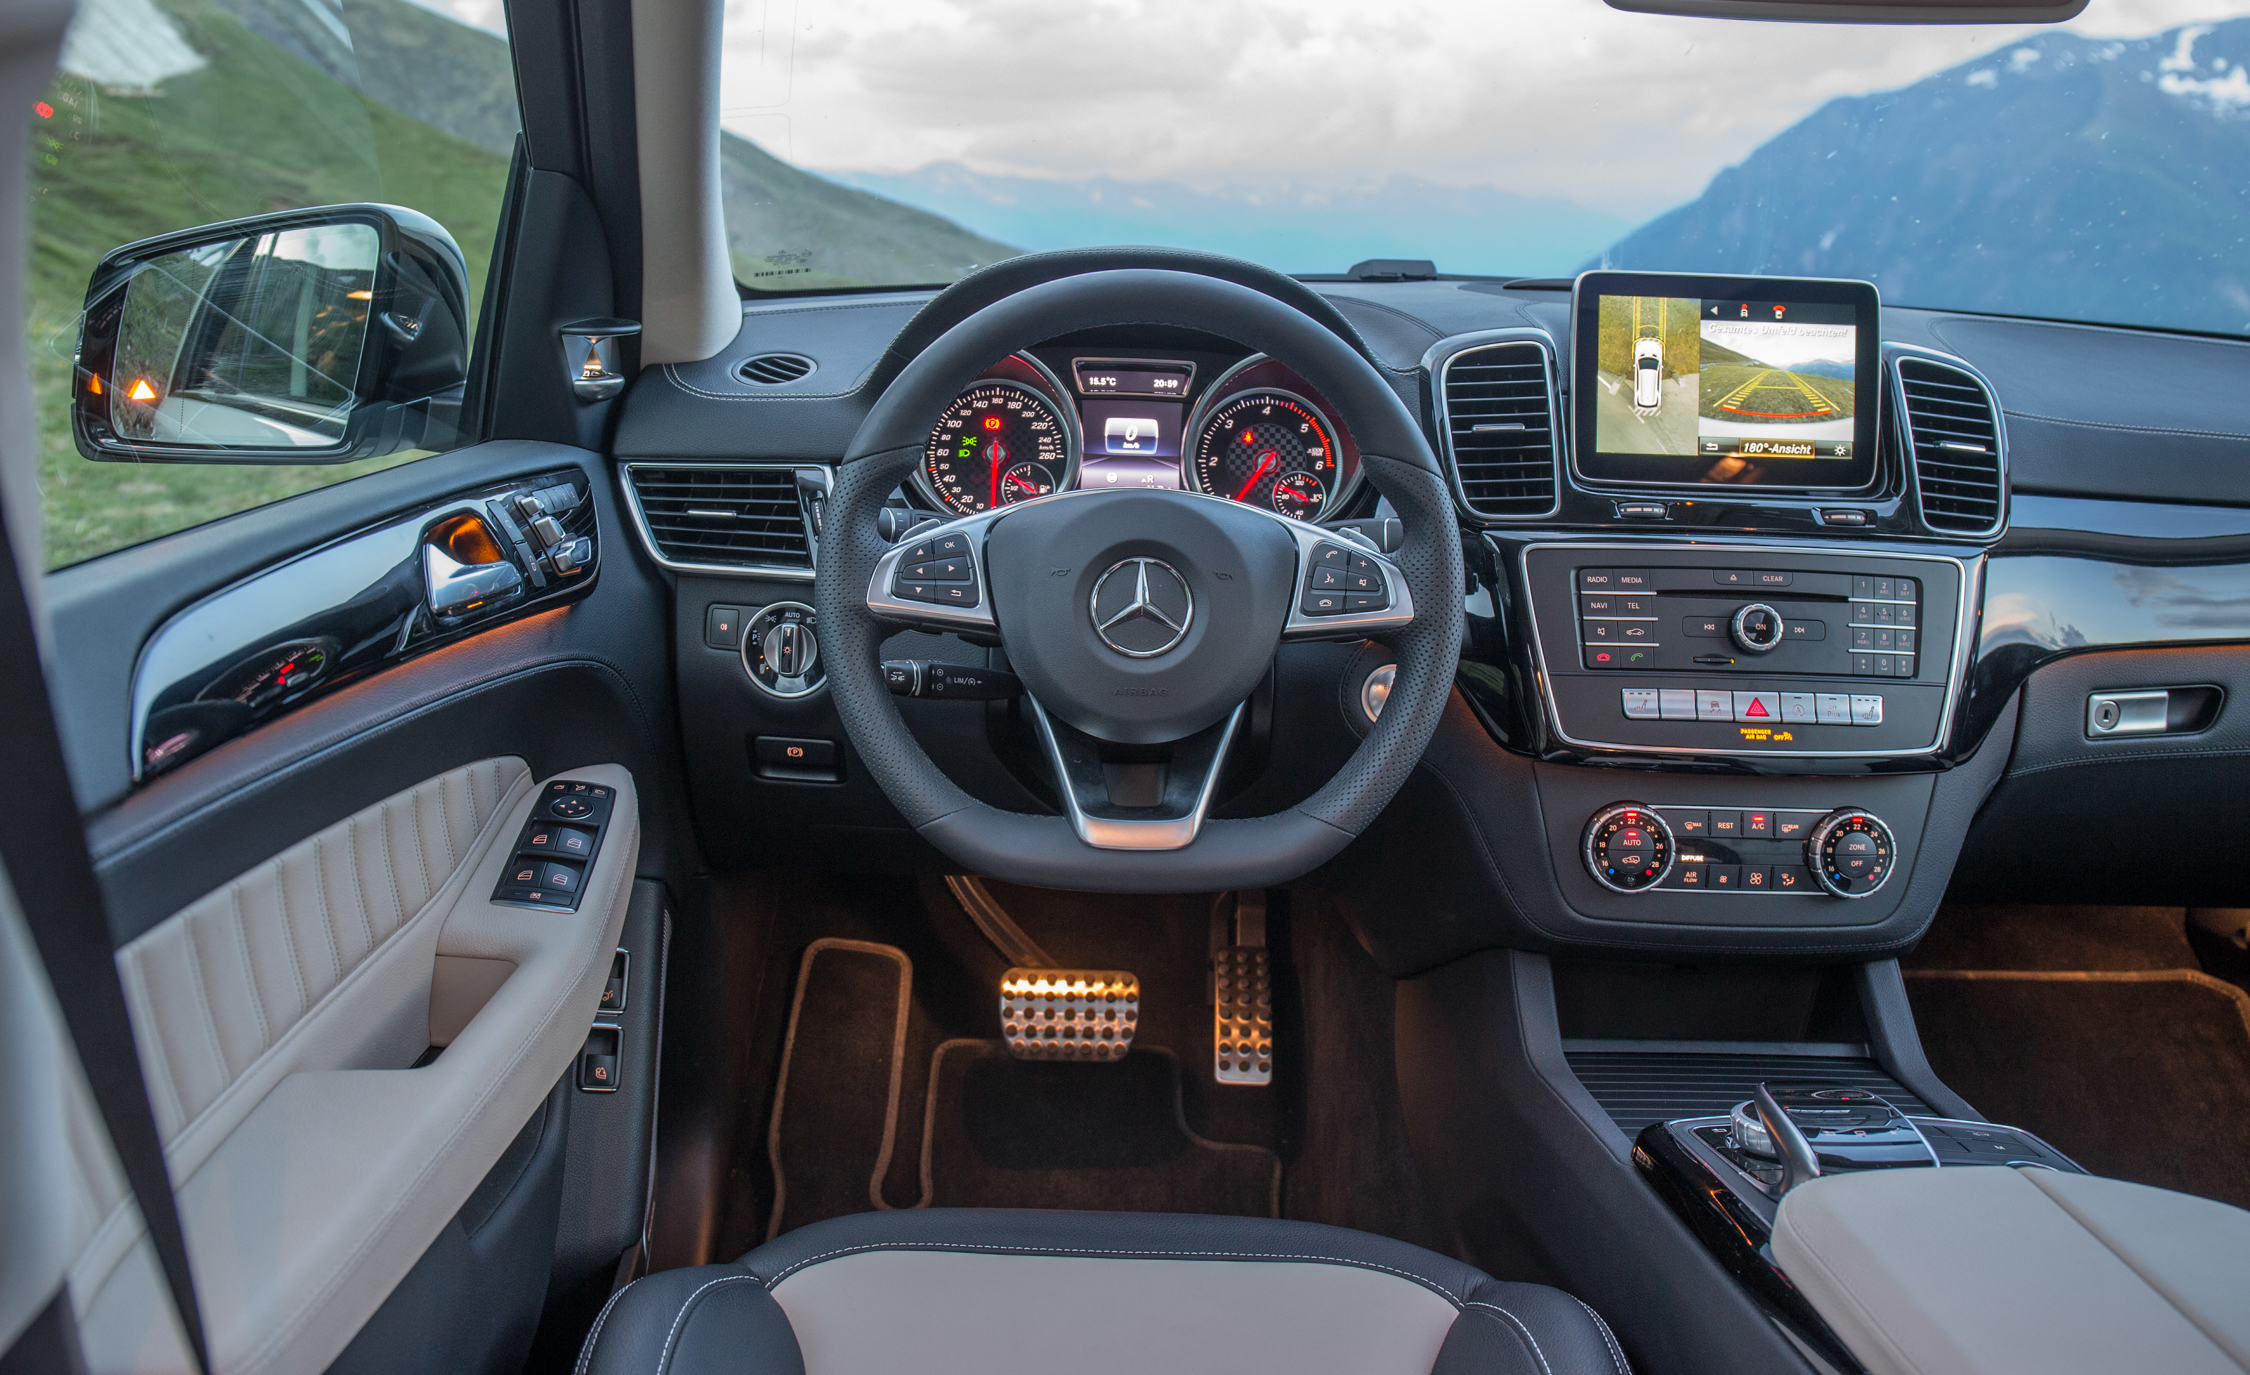 2016 Mercedes Benz GLE400 4MATIC (Photo 23 of 43)